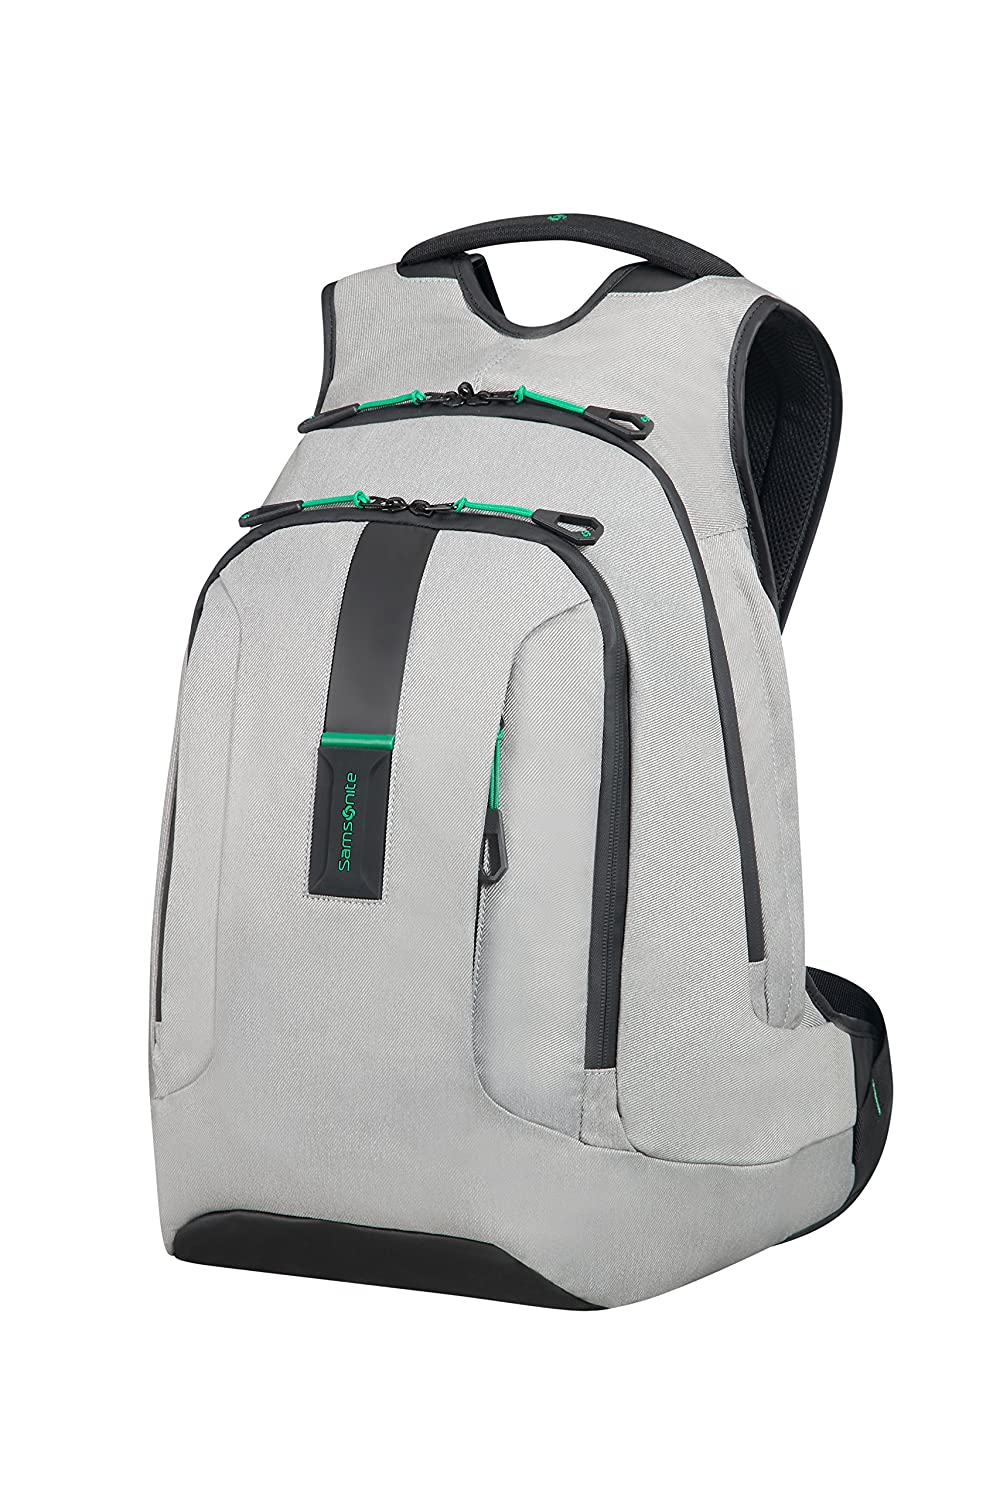 SAMSONITE Paradiver Light Laptop Backpack L Mochila tipo casual cm liters Gris